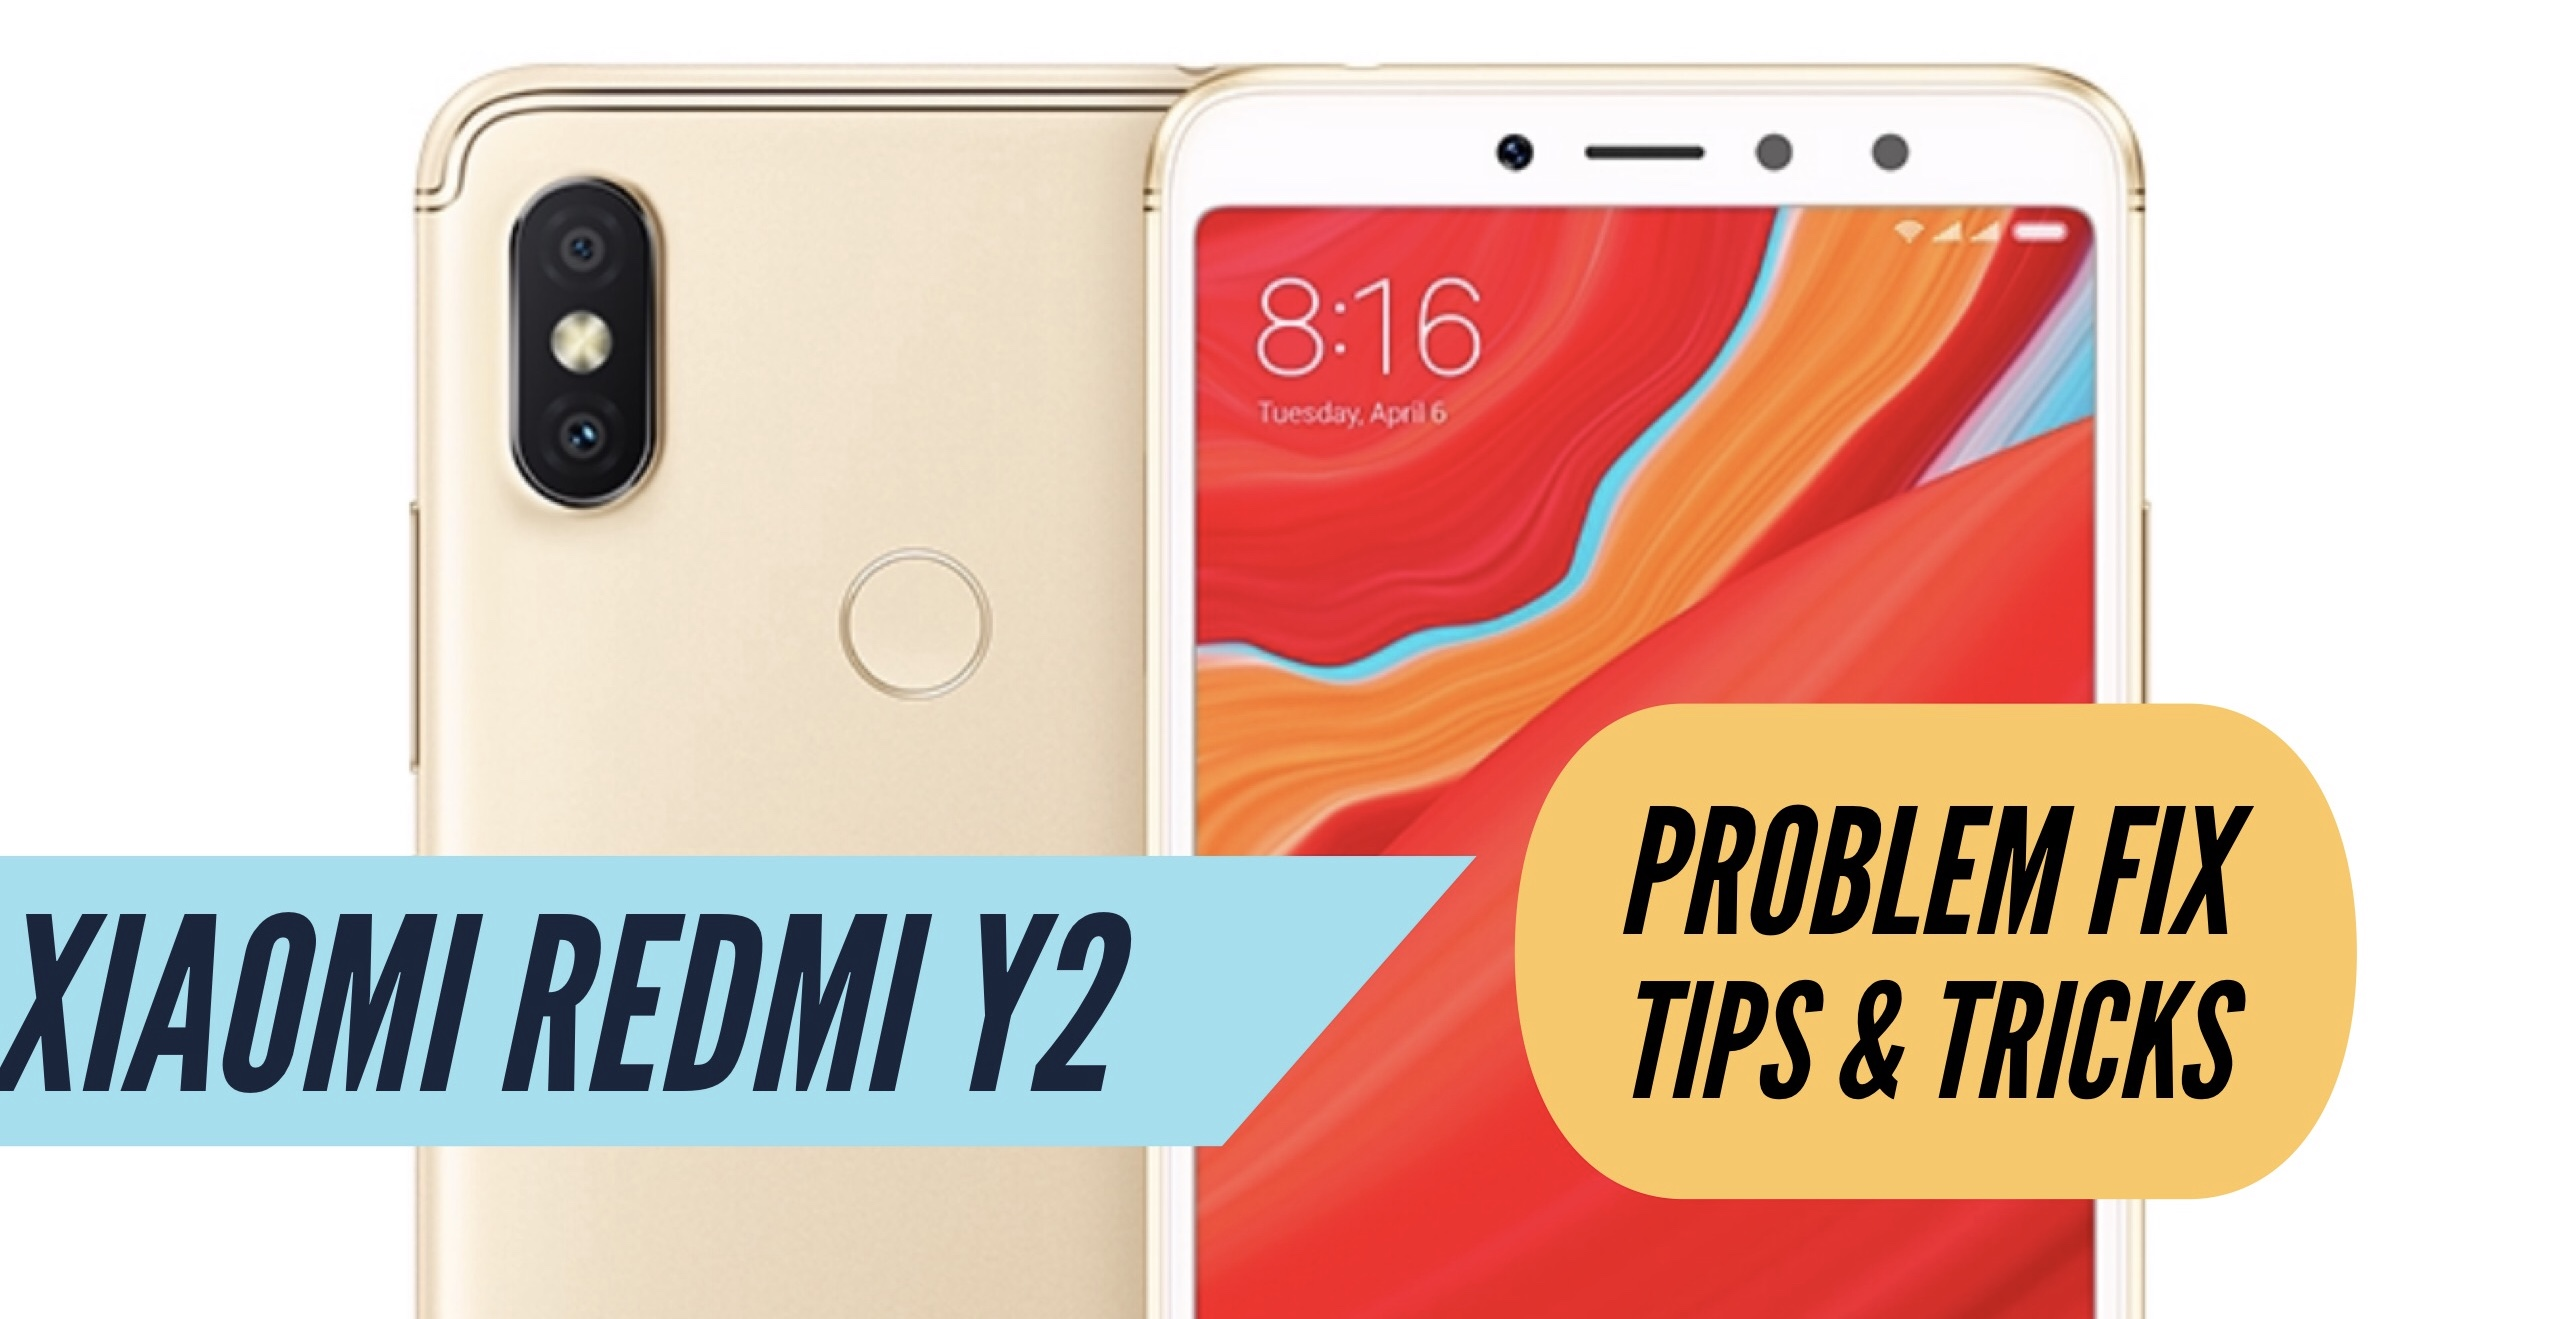 Xiaomi Redmi Y2 Most Common Problems & Issues + Solution Fix